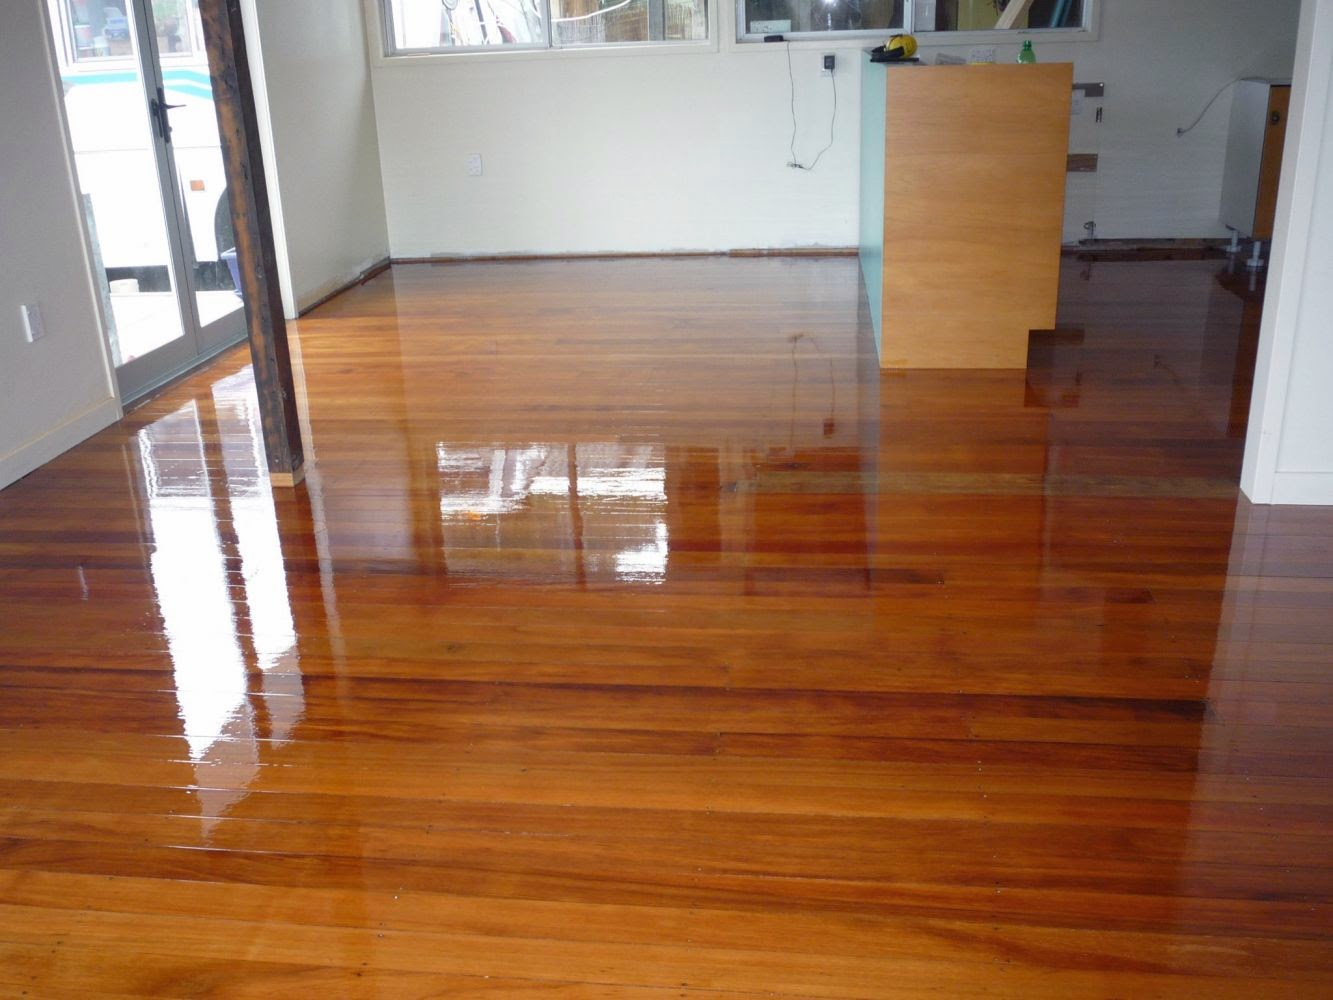 System floor sanding doing it yourself may end up being expensive or may damage the grounds hence it is highly recommendable that you hire a professional to do it for you solutioingenieria Image collections